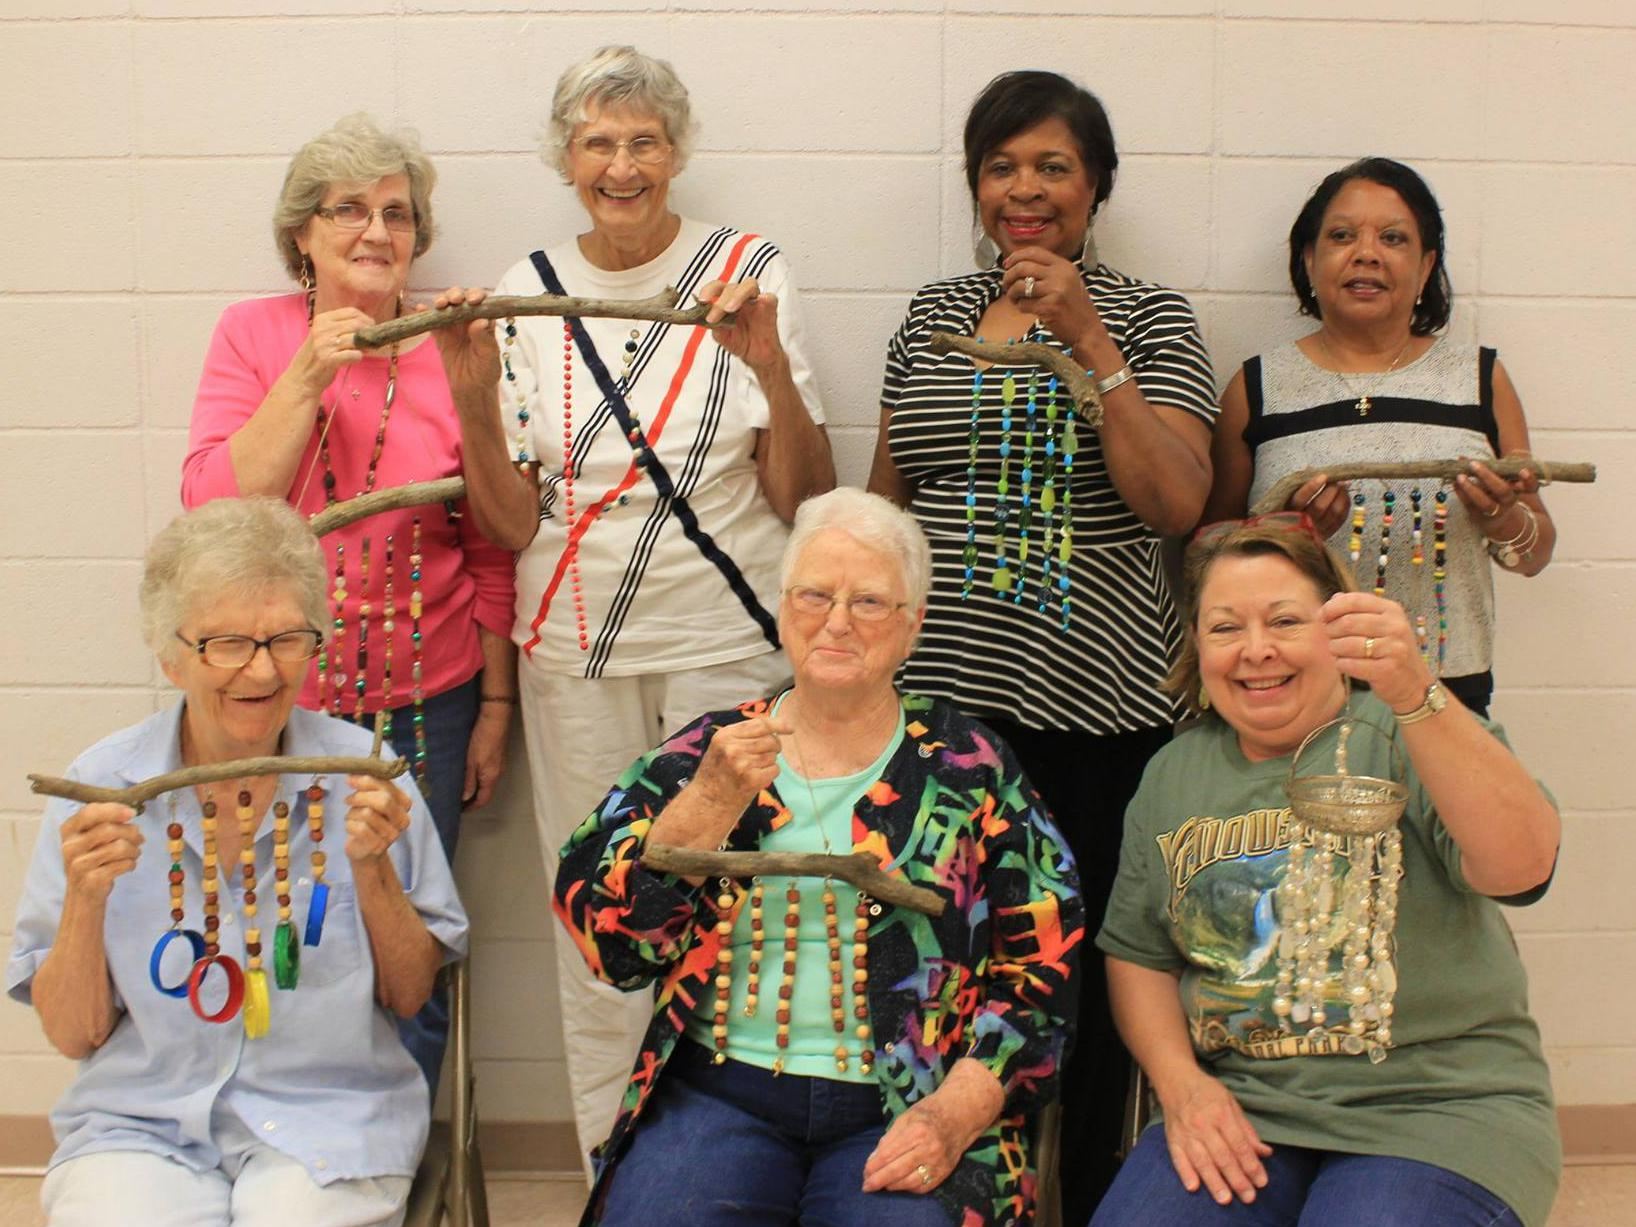 Seven women smile as they hold beaded windchimes.